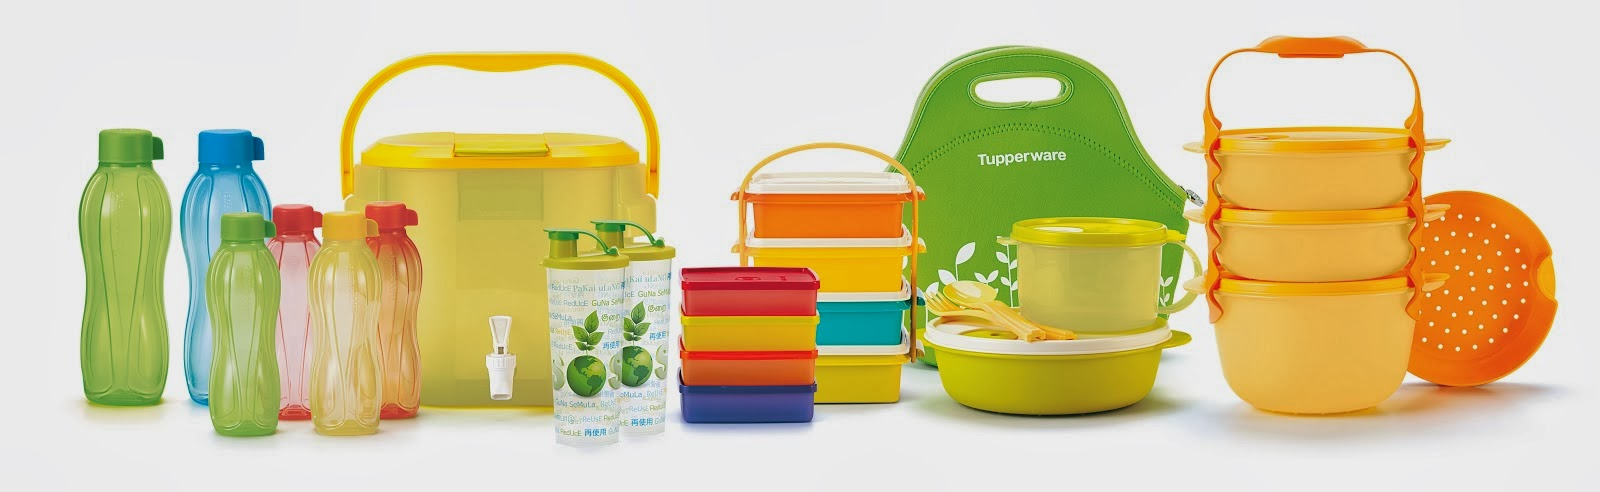 Tupperware MLM Review - Tupperware products